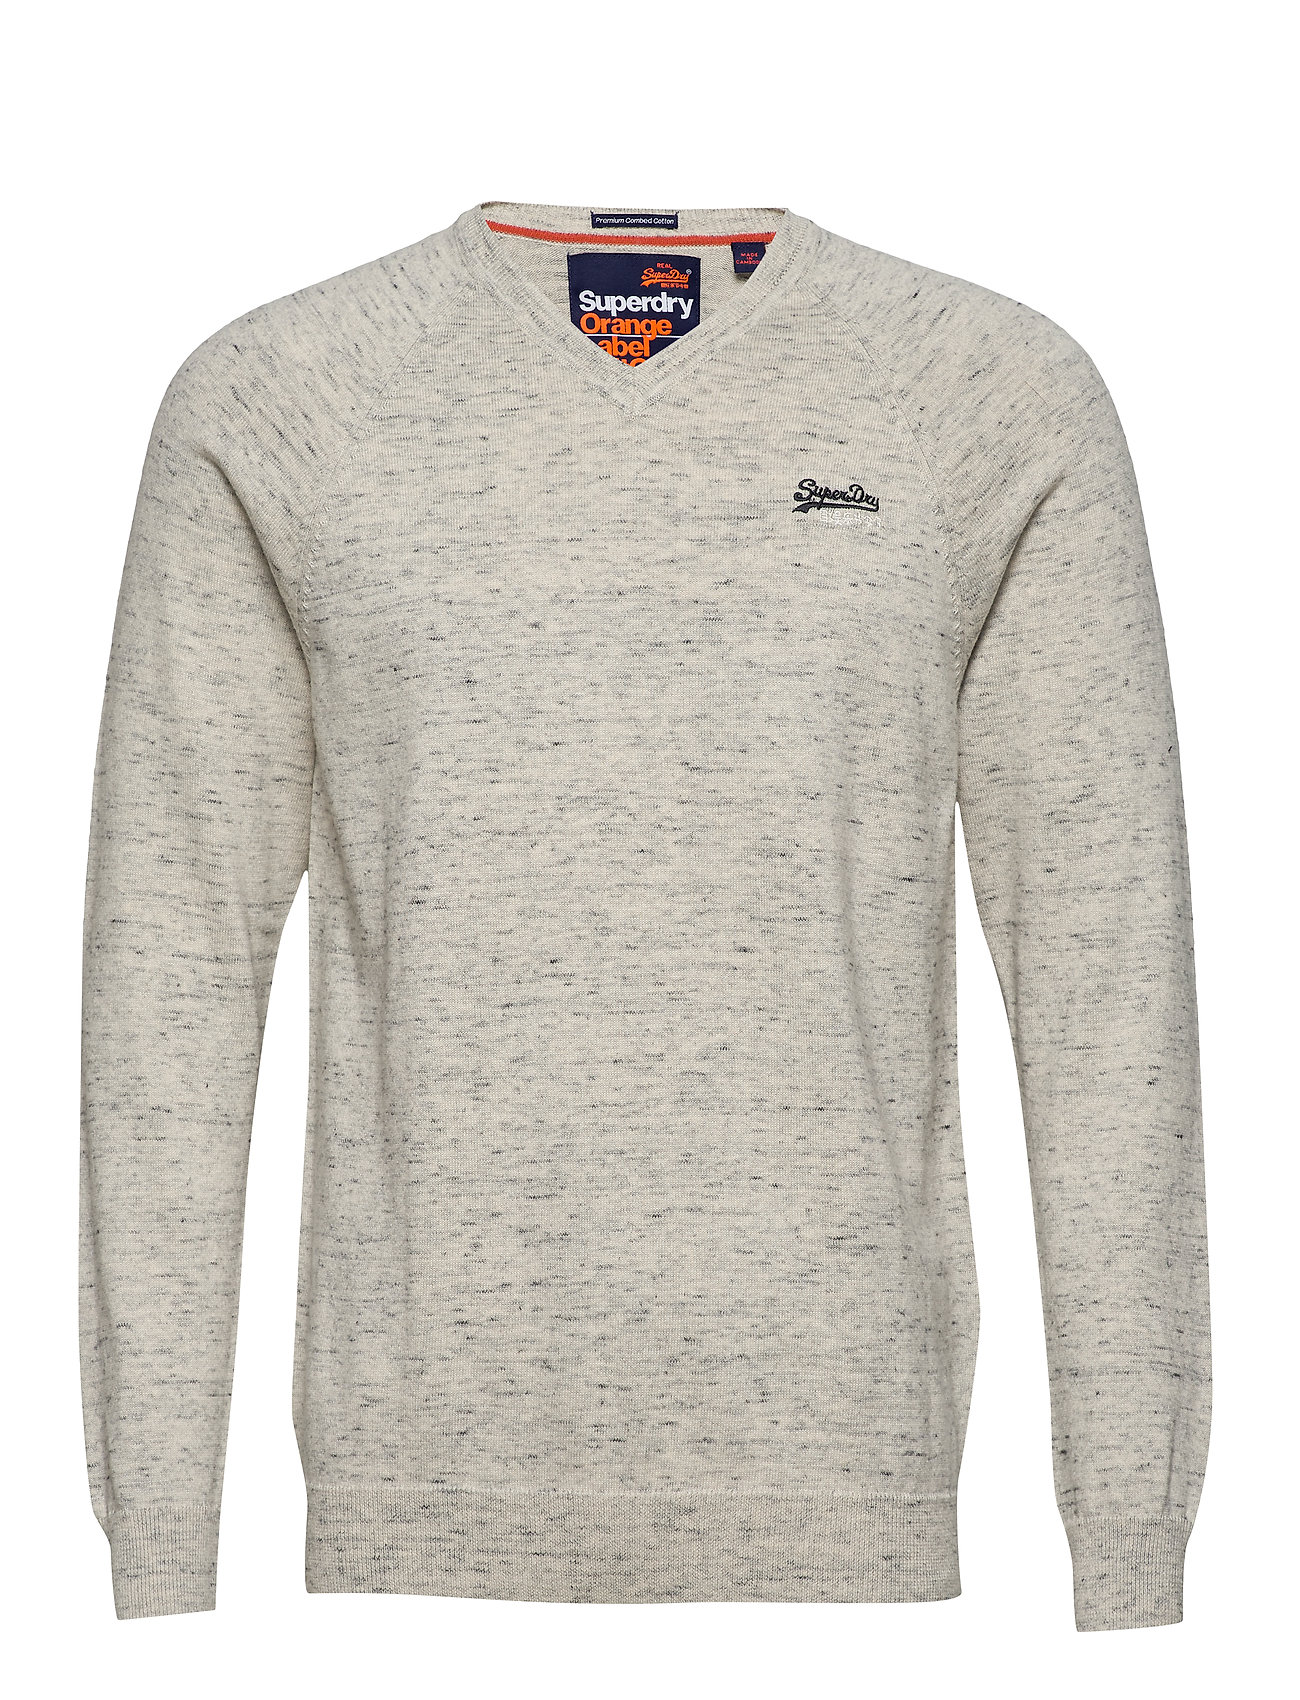 Superdry ORANGE LABEL COTTON VEE - ALASKA GREY GRINDLE